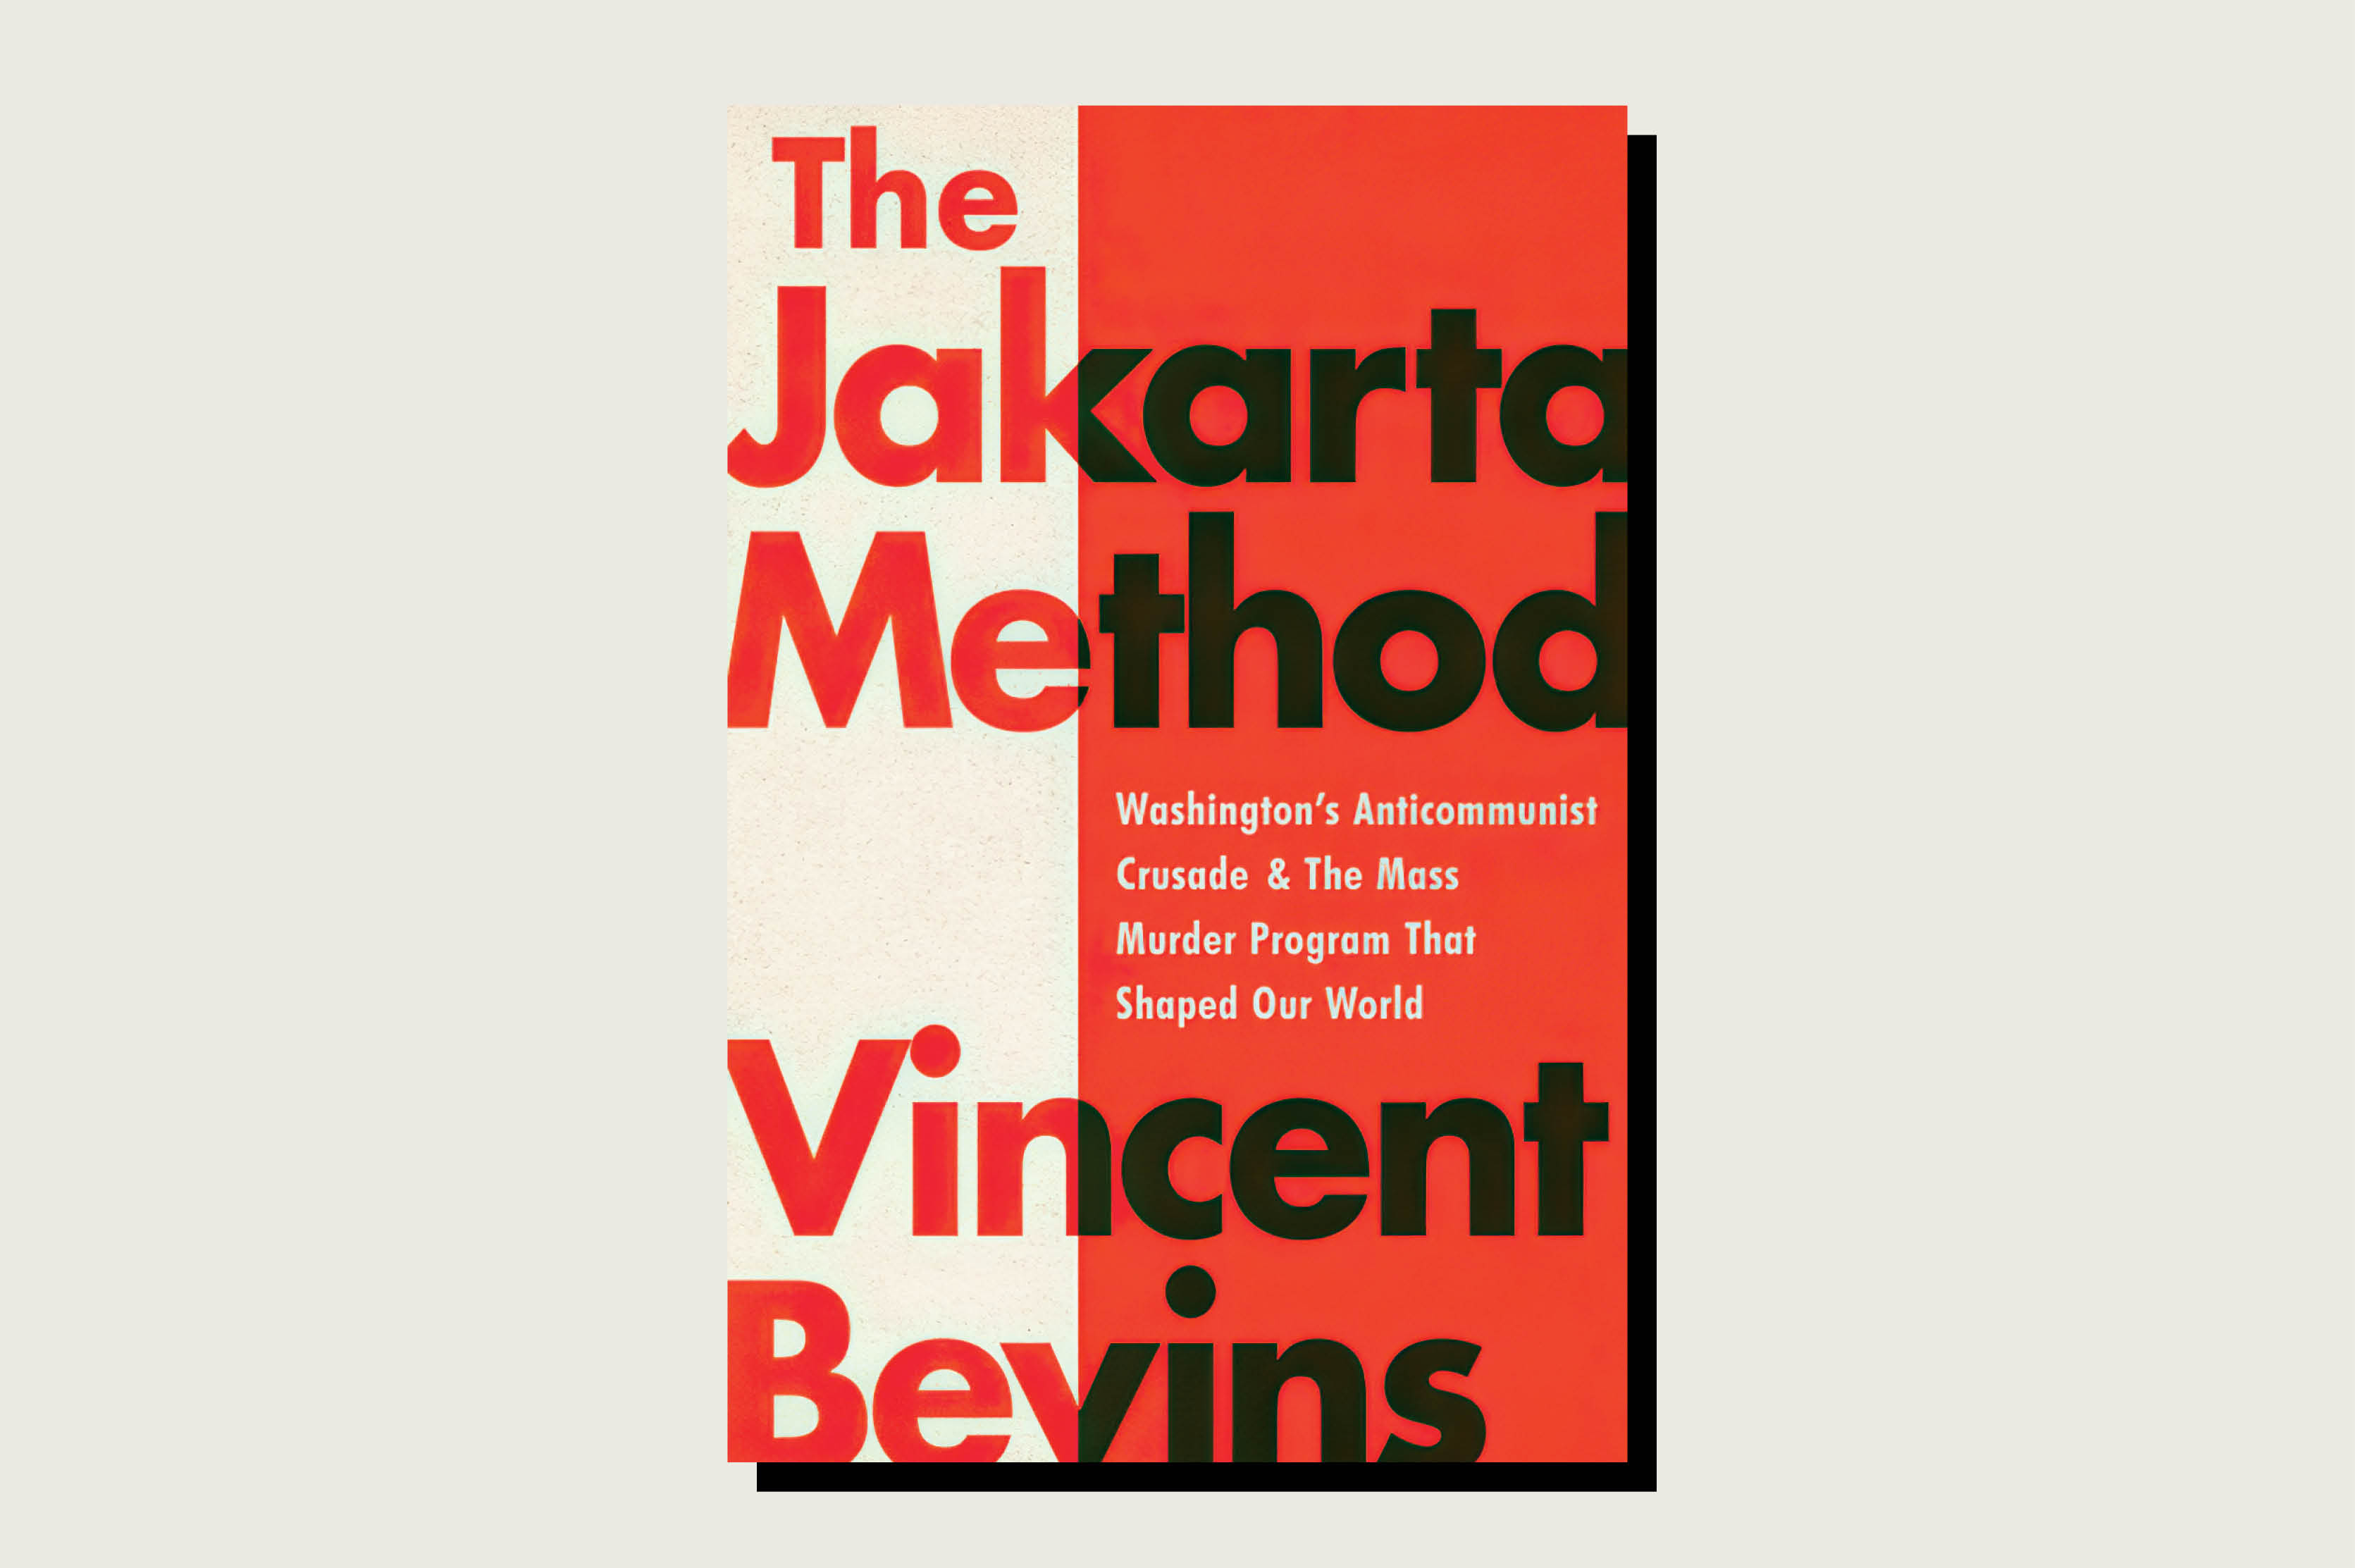 The Jakarta Method: Washington's Anticommunist Crusade and the Mass Murder Program That Shaped Our World, Vincent Bevins, PublicAffairs, 320 pp., , May 2020